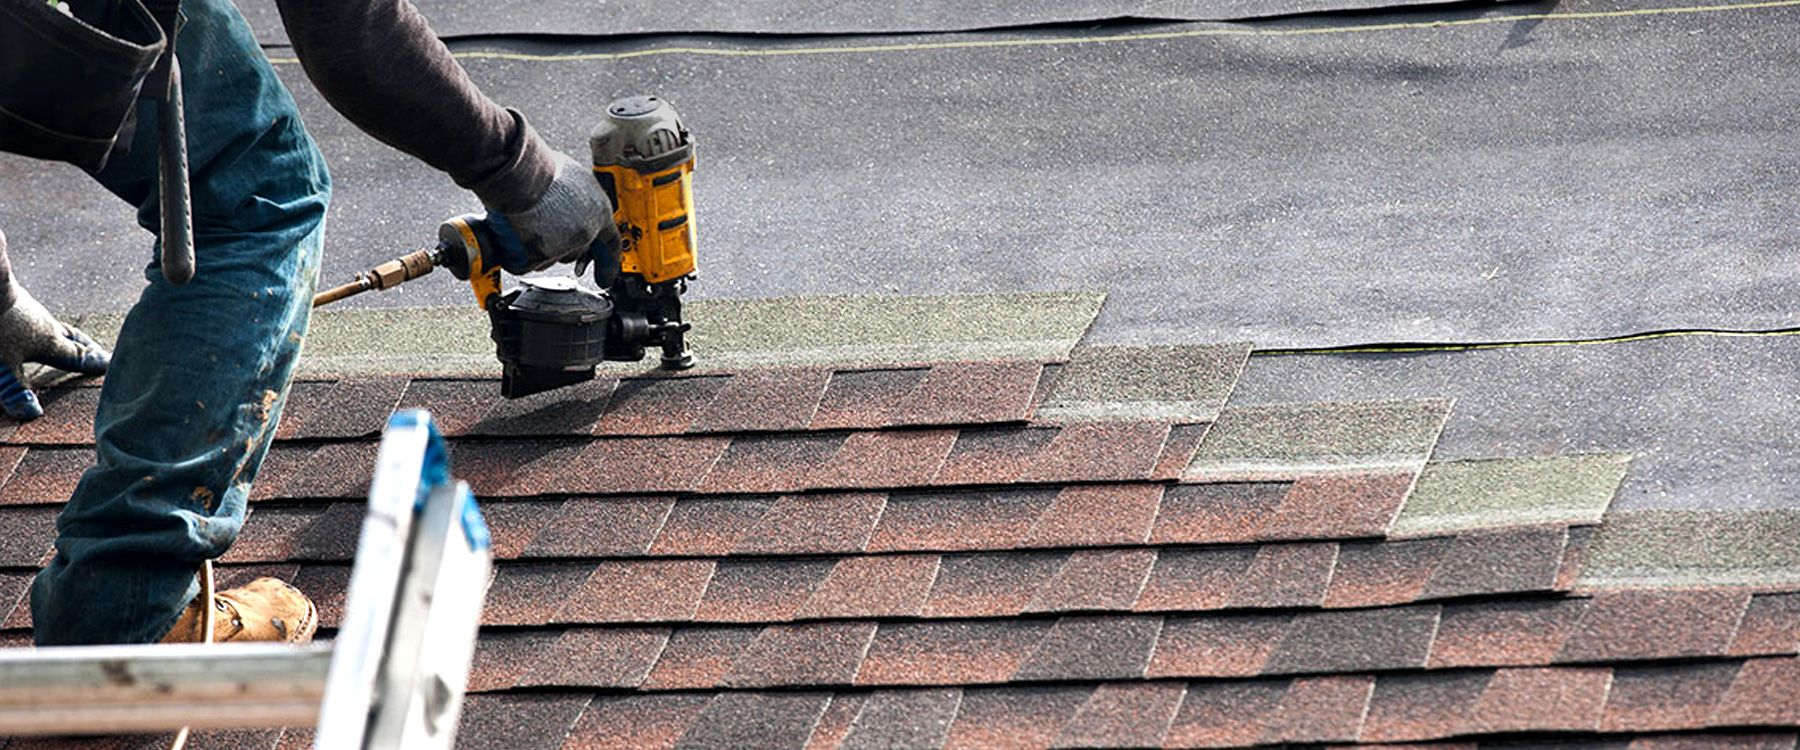 Best Roofing Company Is A Family Owned And Operated Class A State Licensed Contractor We Have Been Professionally Insta With Images Roofing Roof Repair Roof Installation